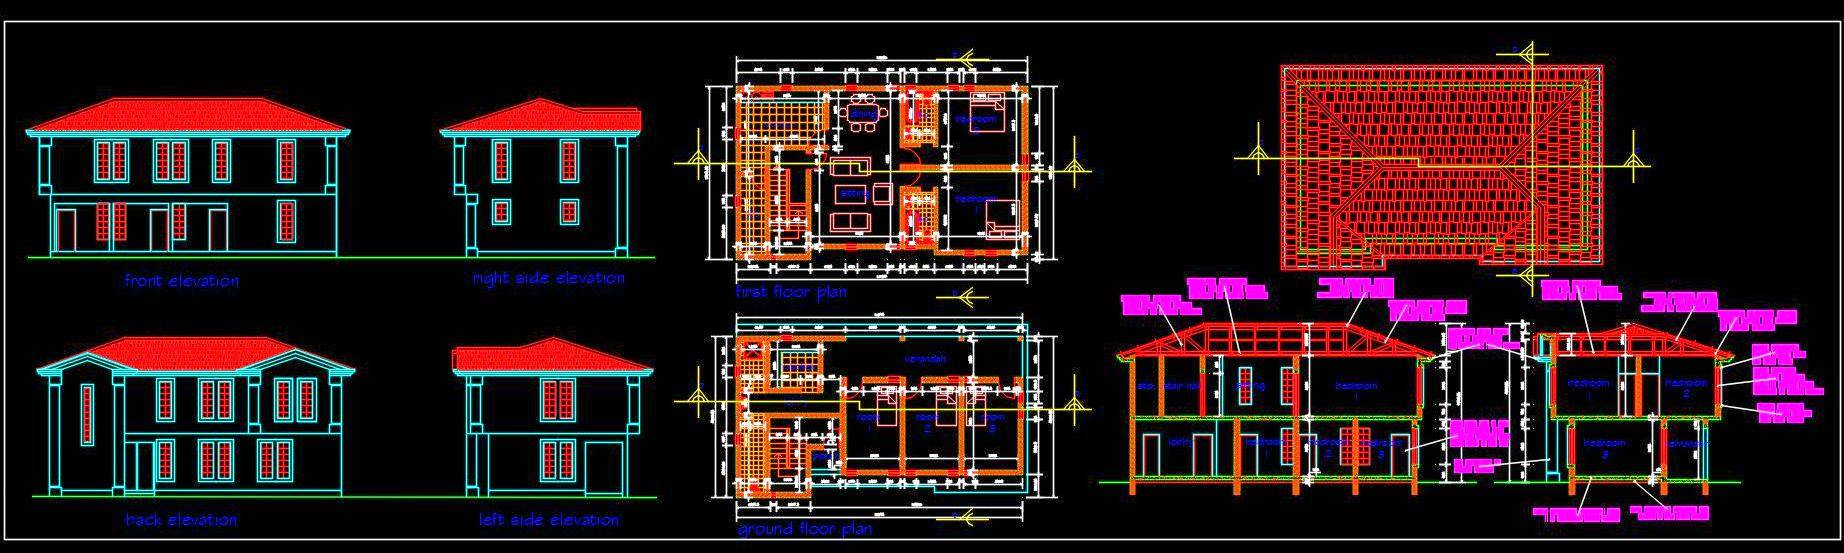 Timber Truss Roof Duplex House Free DWG File Download